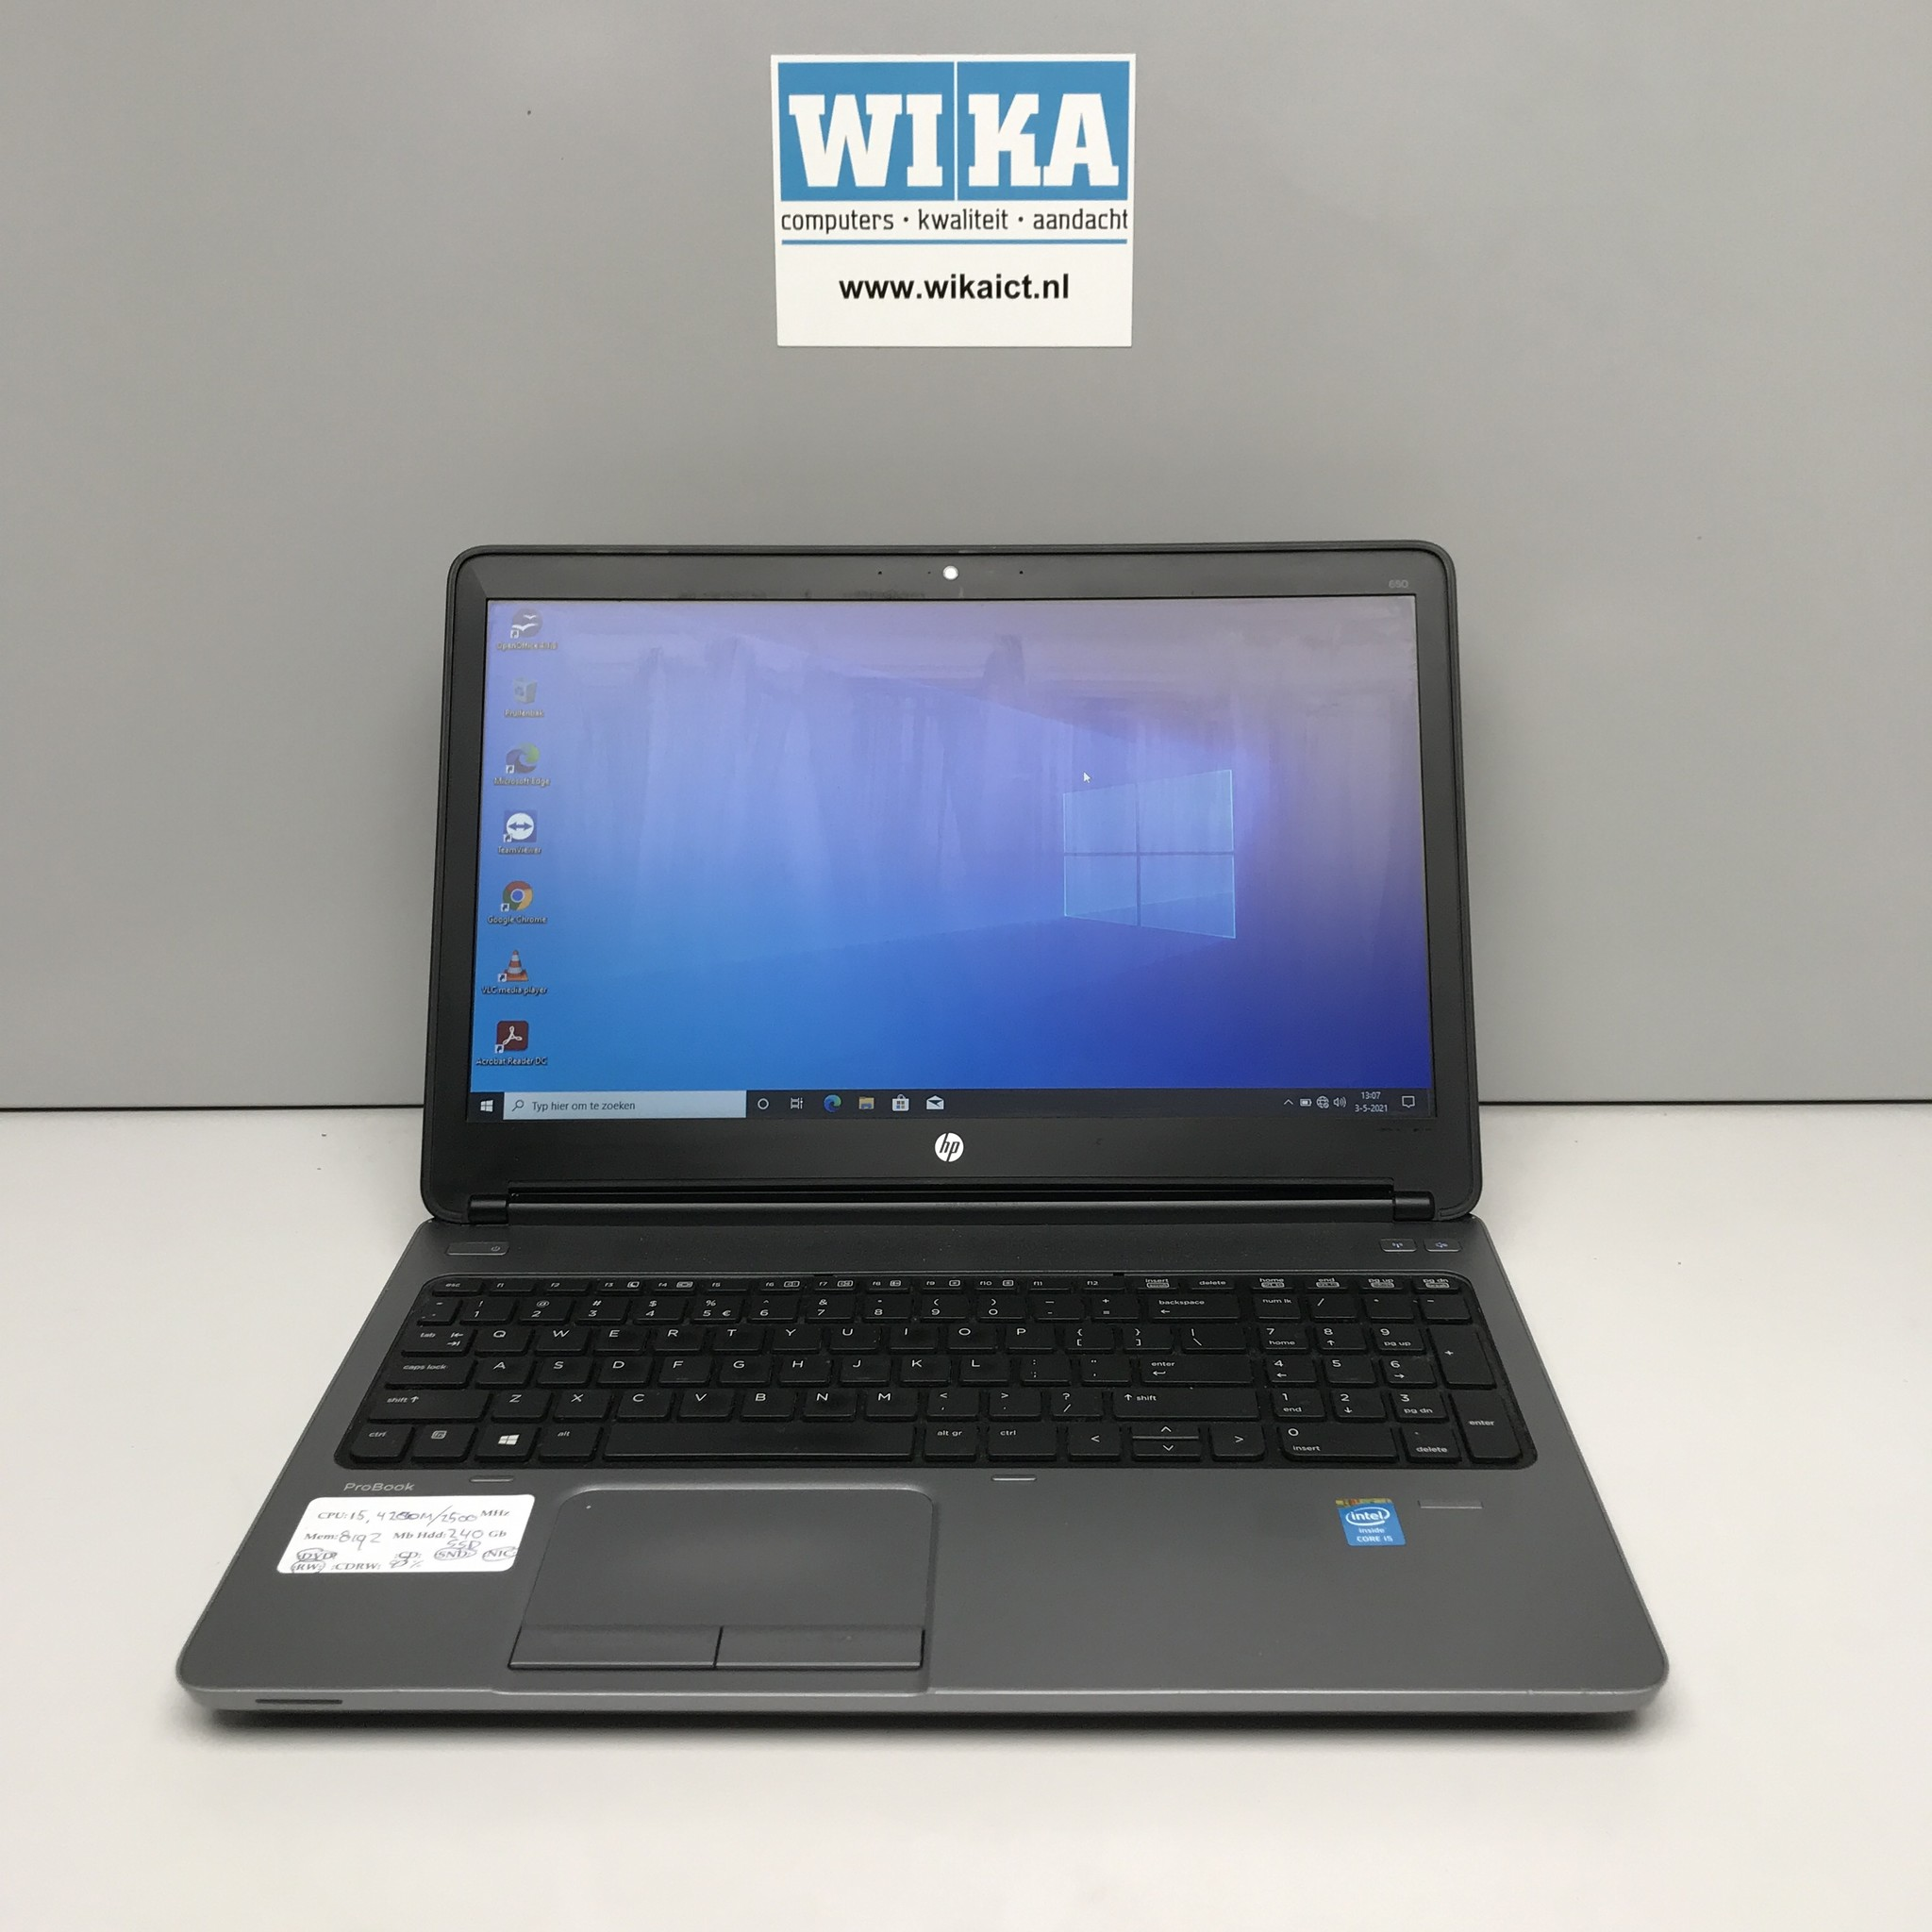 HP Probook 650 G1 i5-4200M 8Gb 240 gb SSD 15.6 laptop